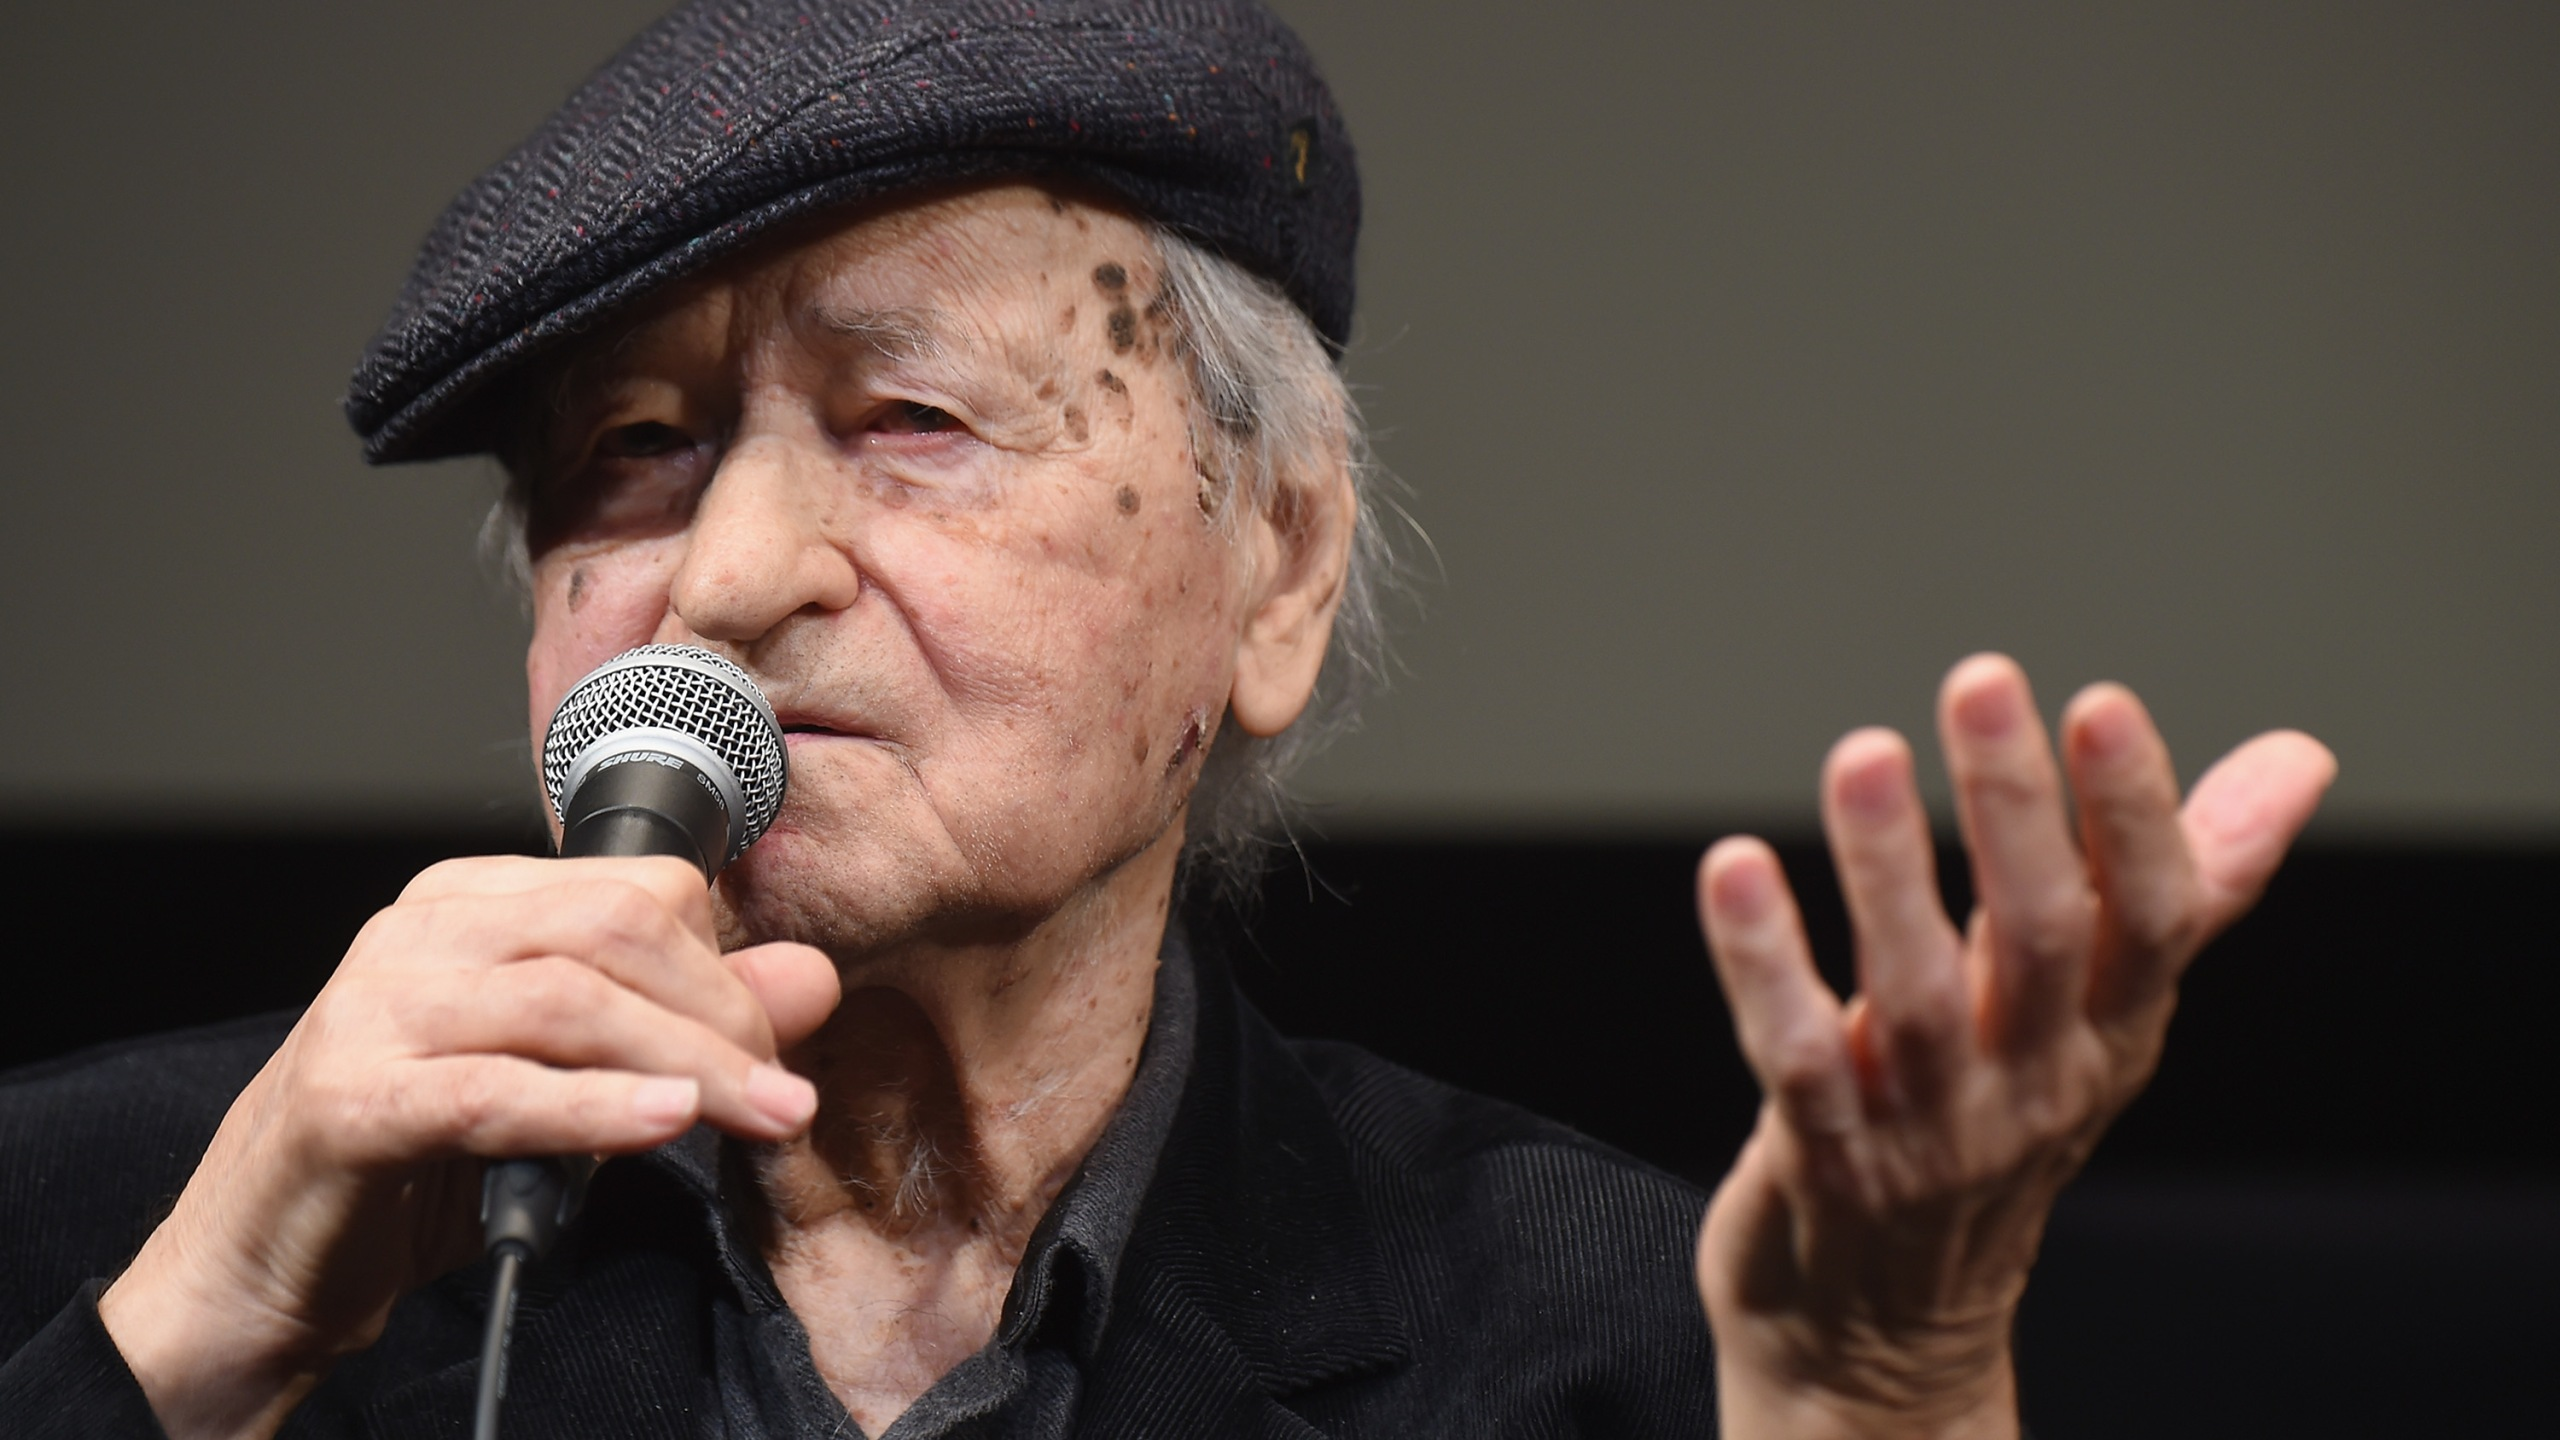 """Jonas Mekas takes part in a Q&A following the """"I Had Nowhere To Go"""" screening during the 54th New York Film Festival at The Film Society of Lincoln Center, Walter Reade Theater on Oct. 13, 2016. (Credit: Michael Loccisano/Getty Images)"""